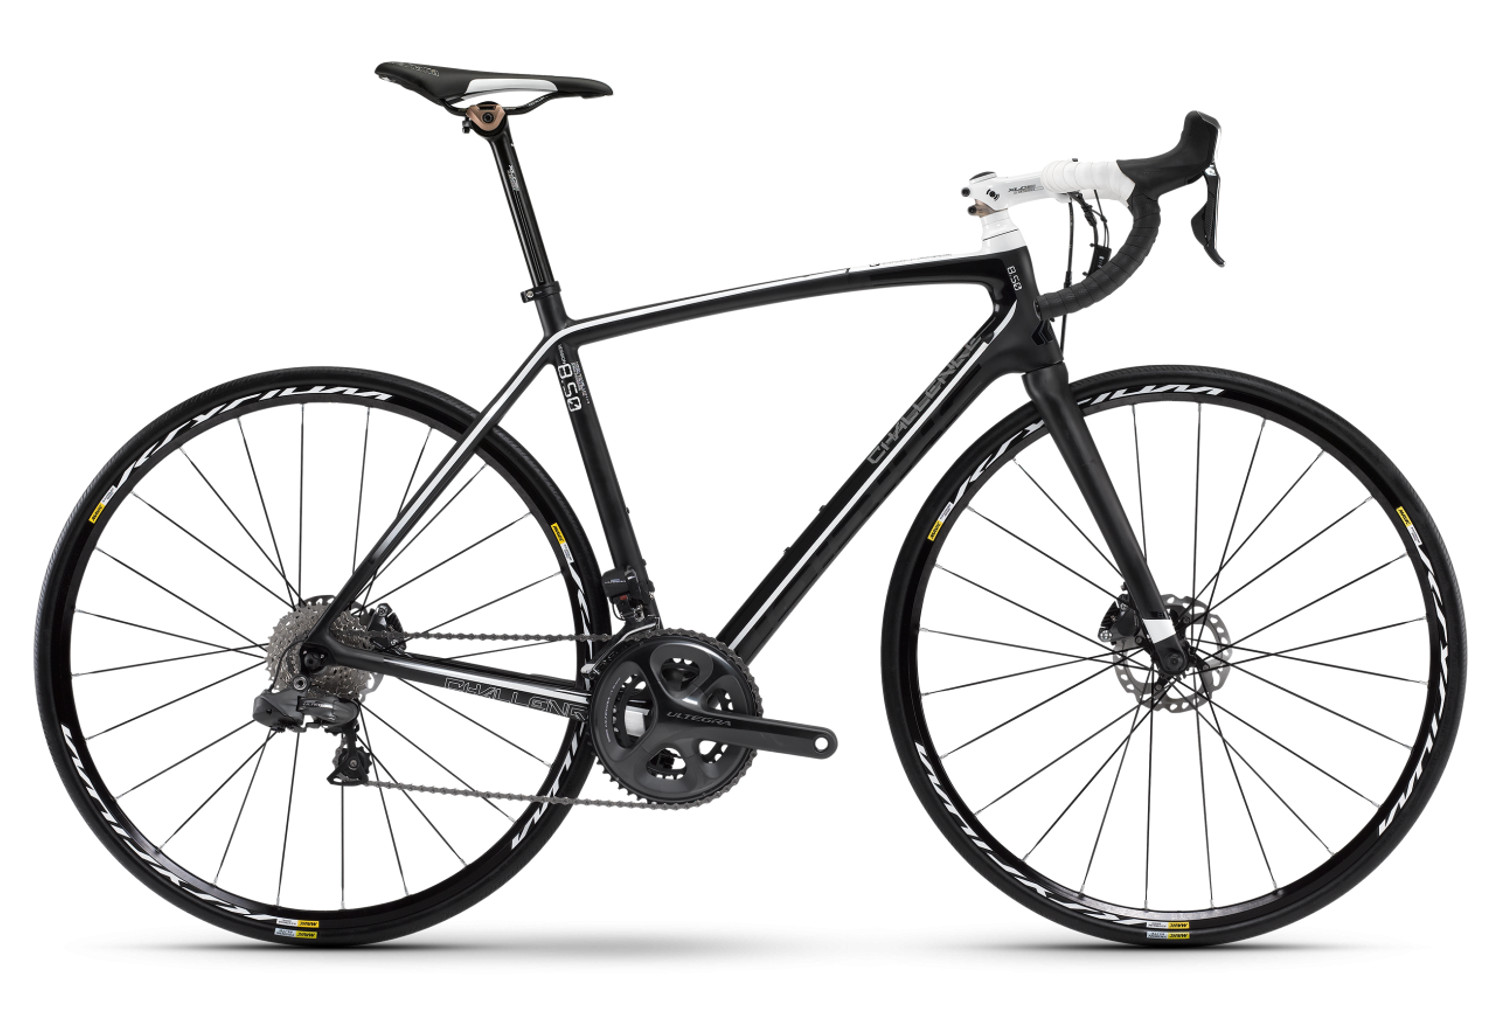 56a0908a7f7df haibike 2016 road bike challenge 8 50 disc shimano ultegra di2 11s  at gsmx.co